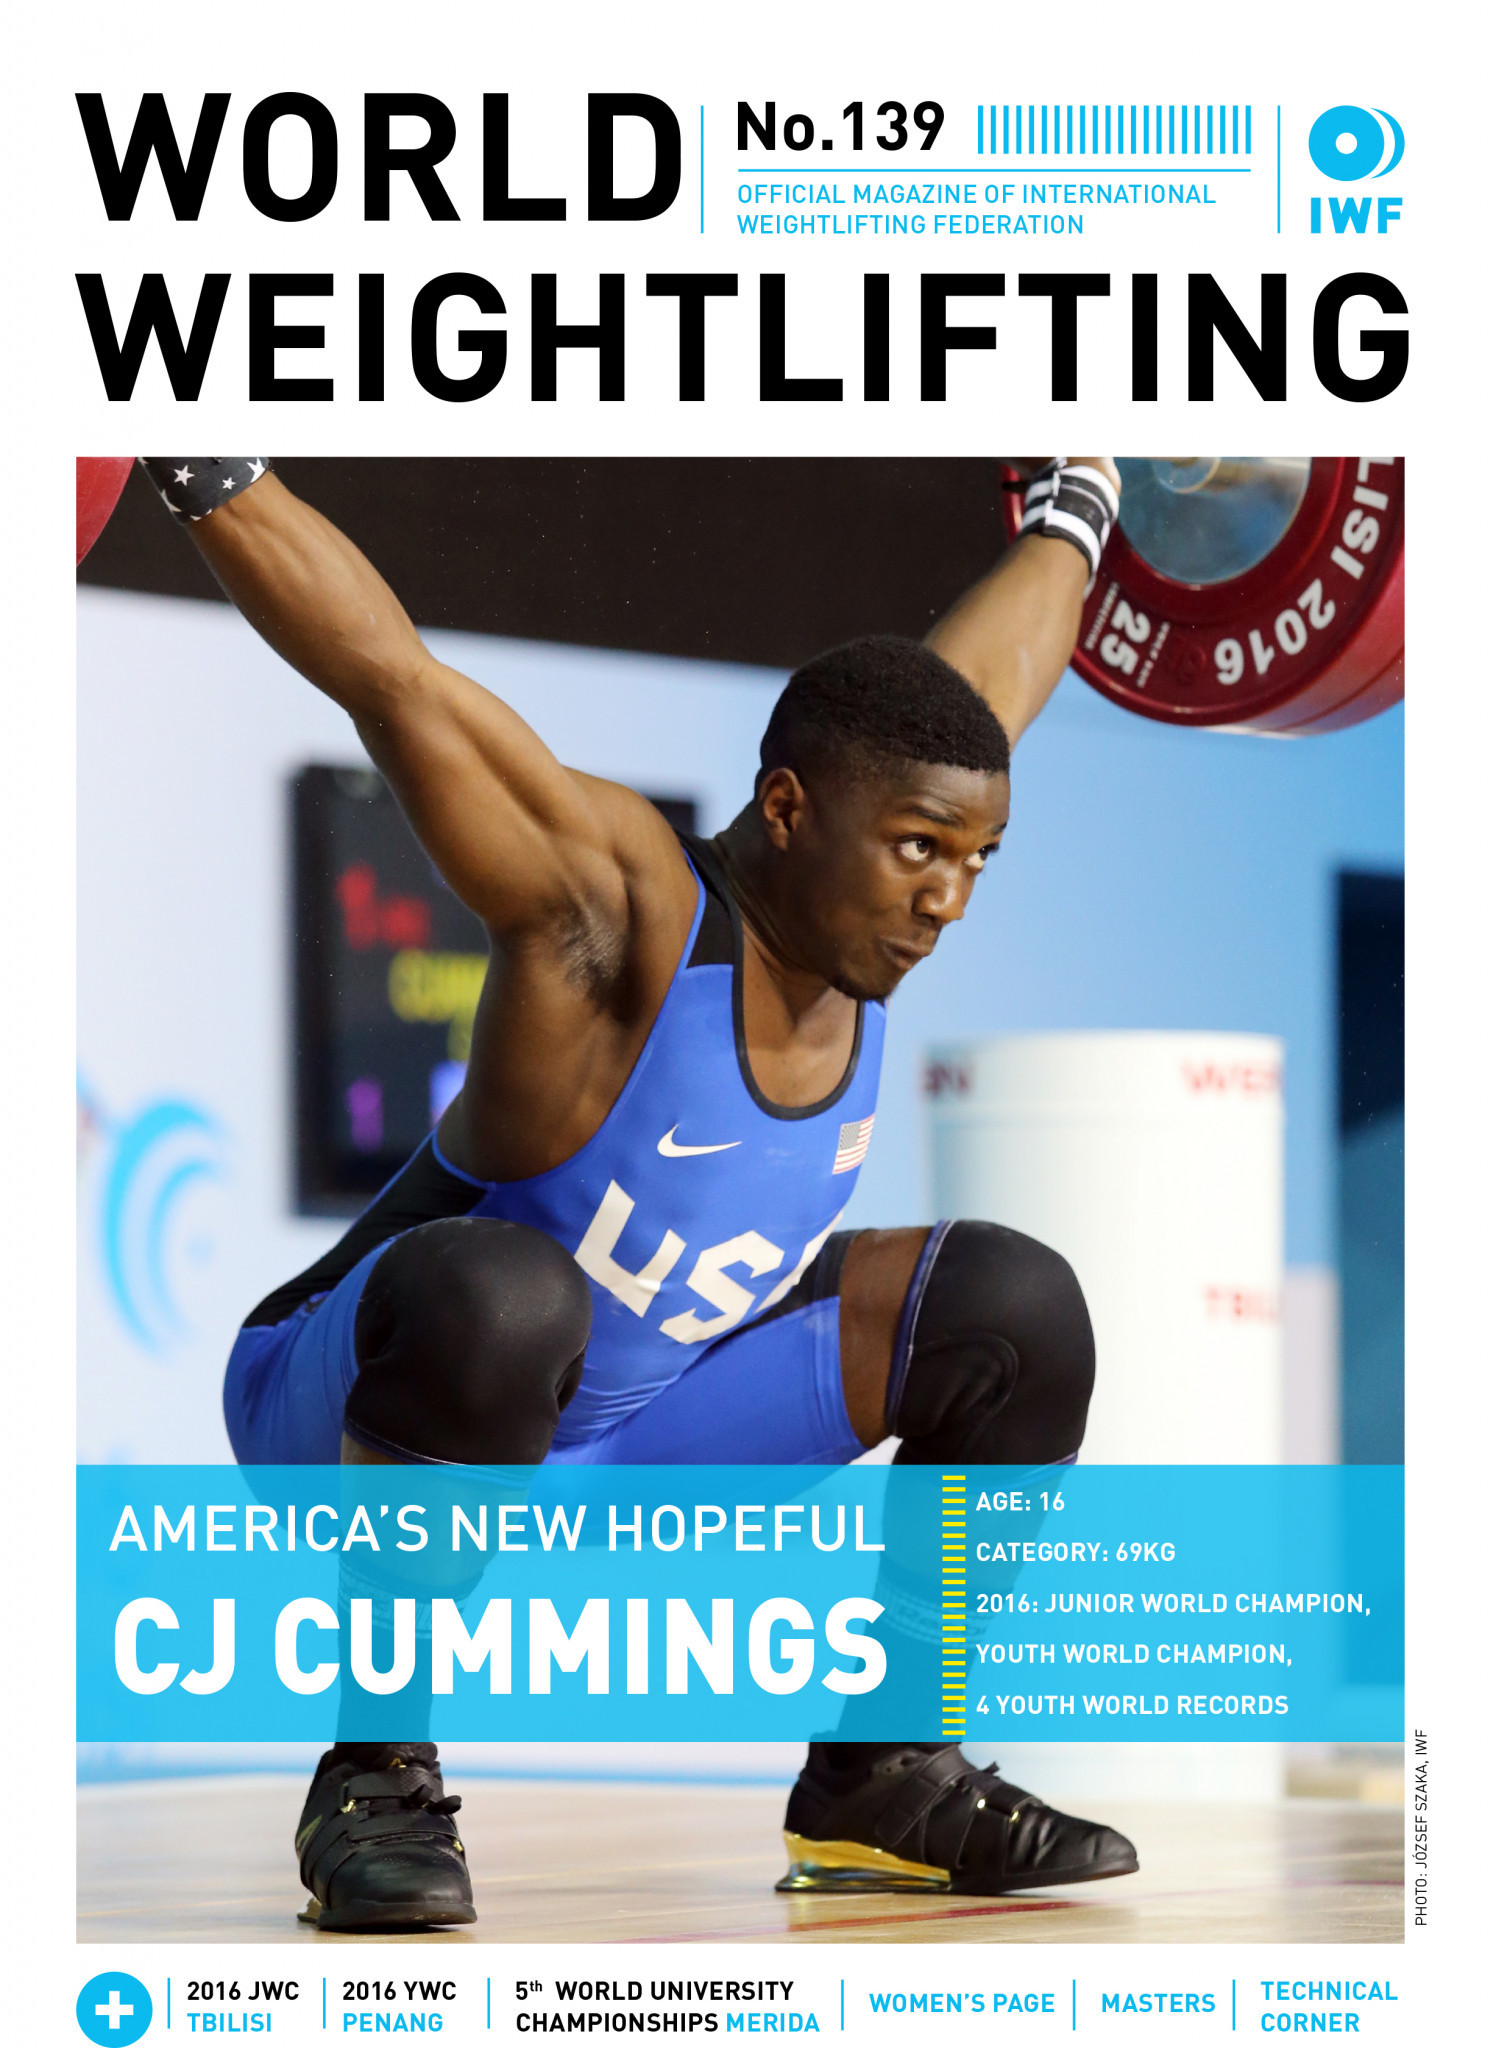 World Weightlifting Magazine No. 139